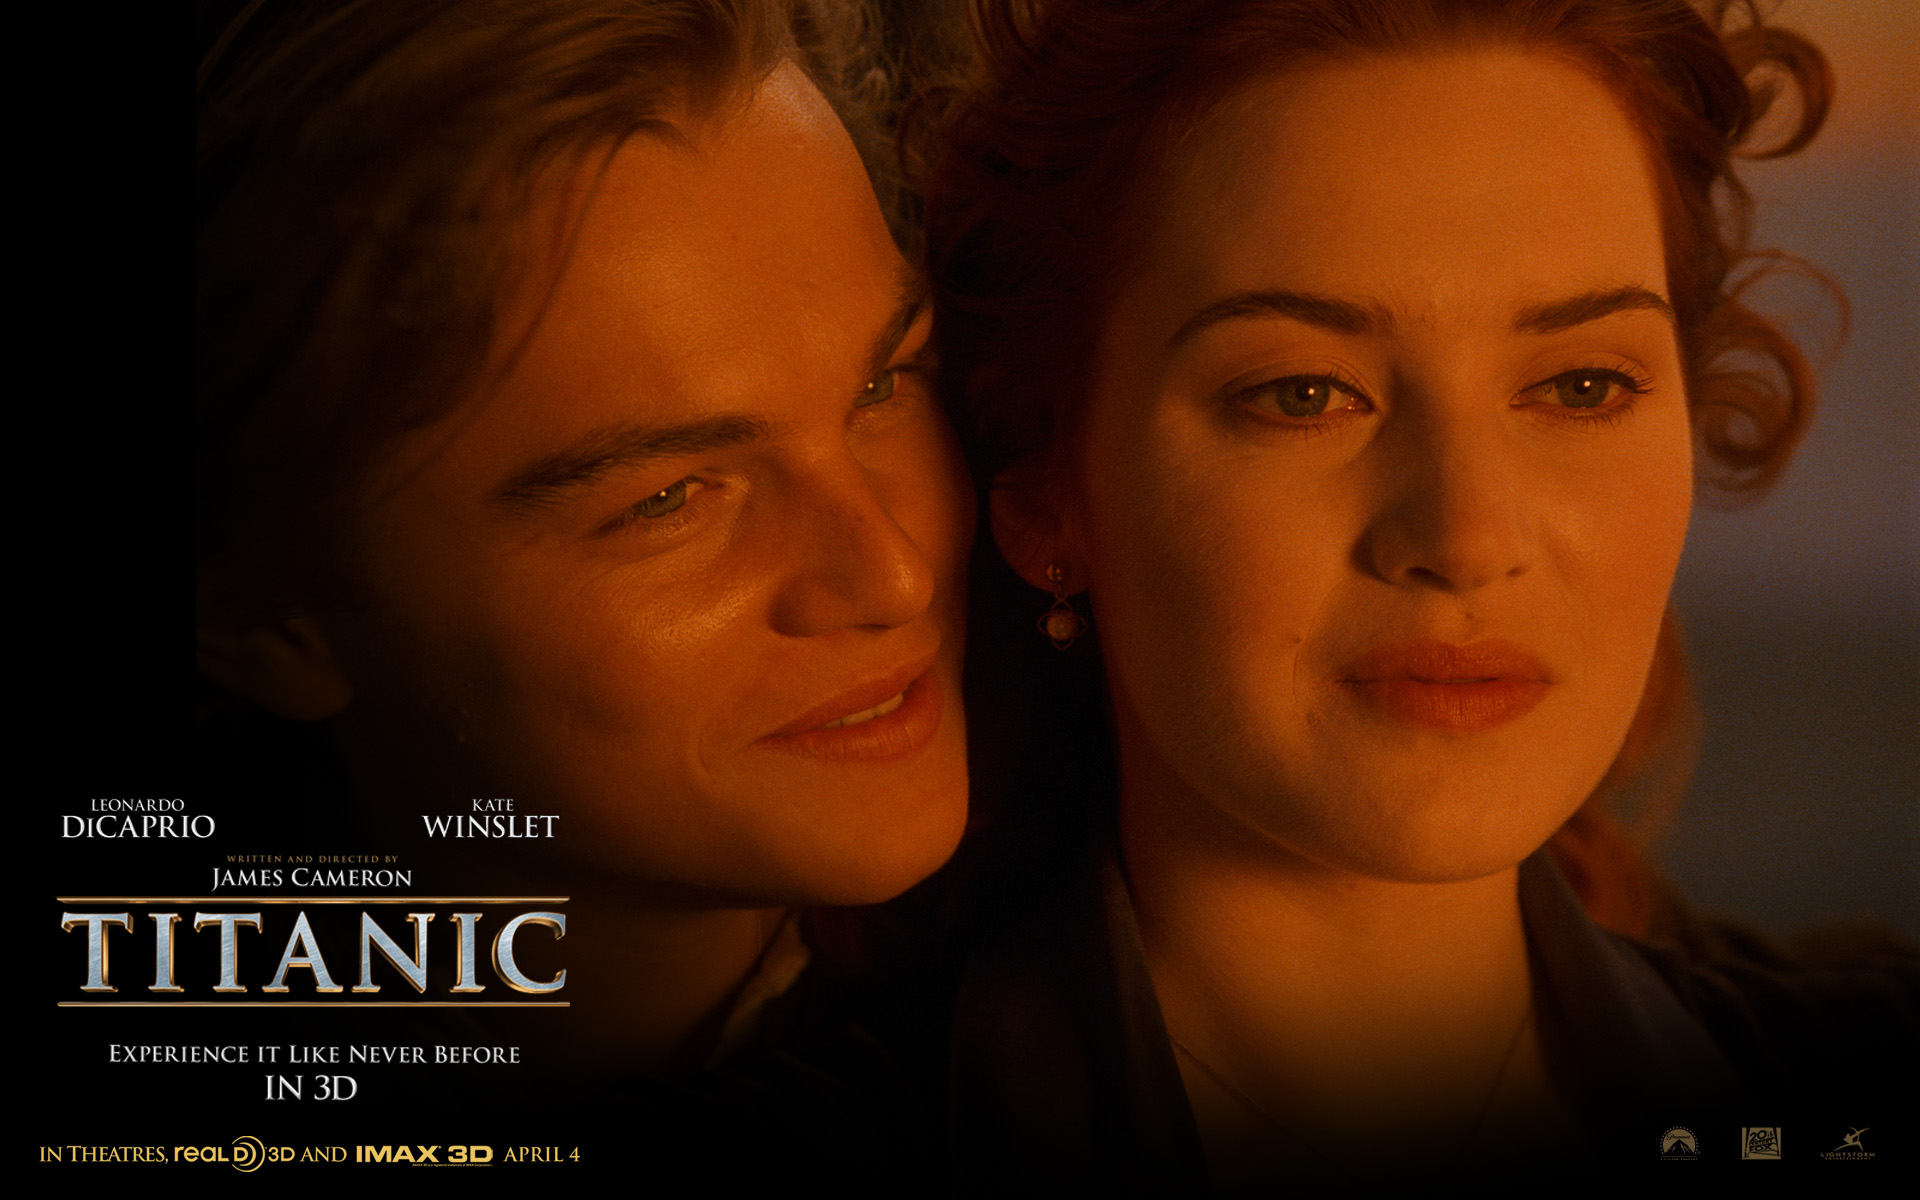 titanic images titanic 3d movie walpapers hd wallpaper and